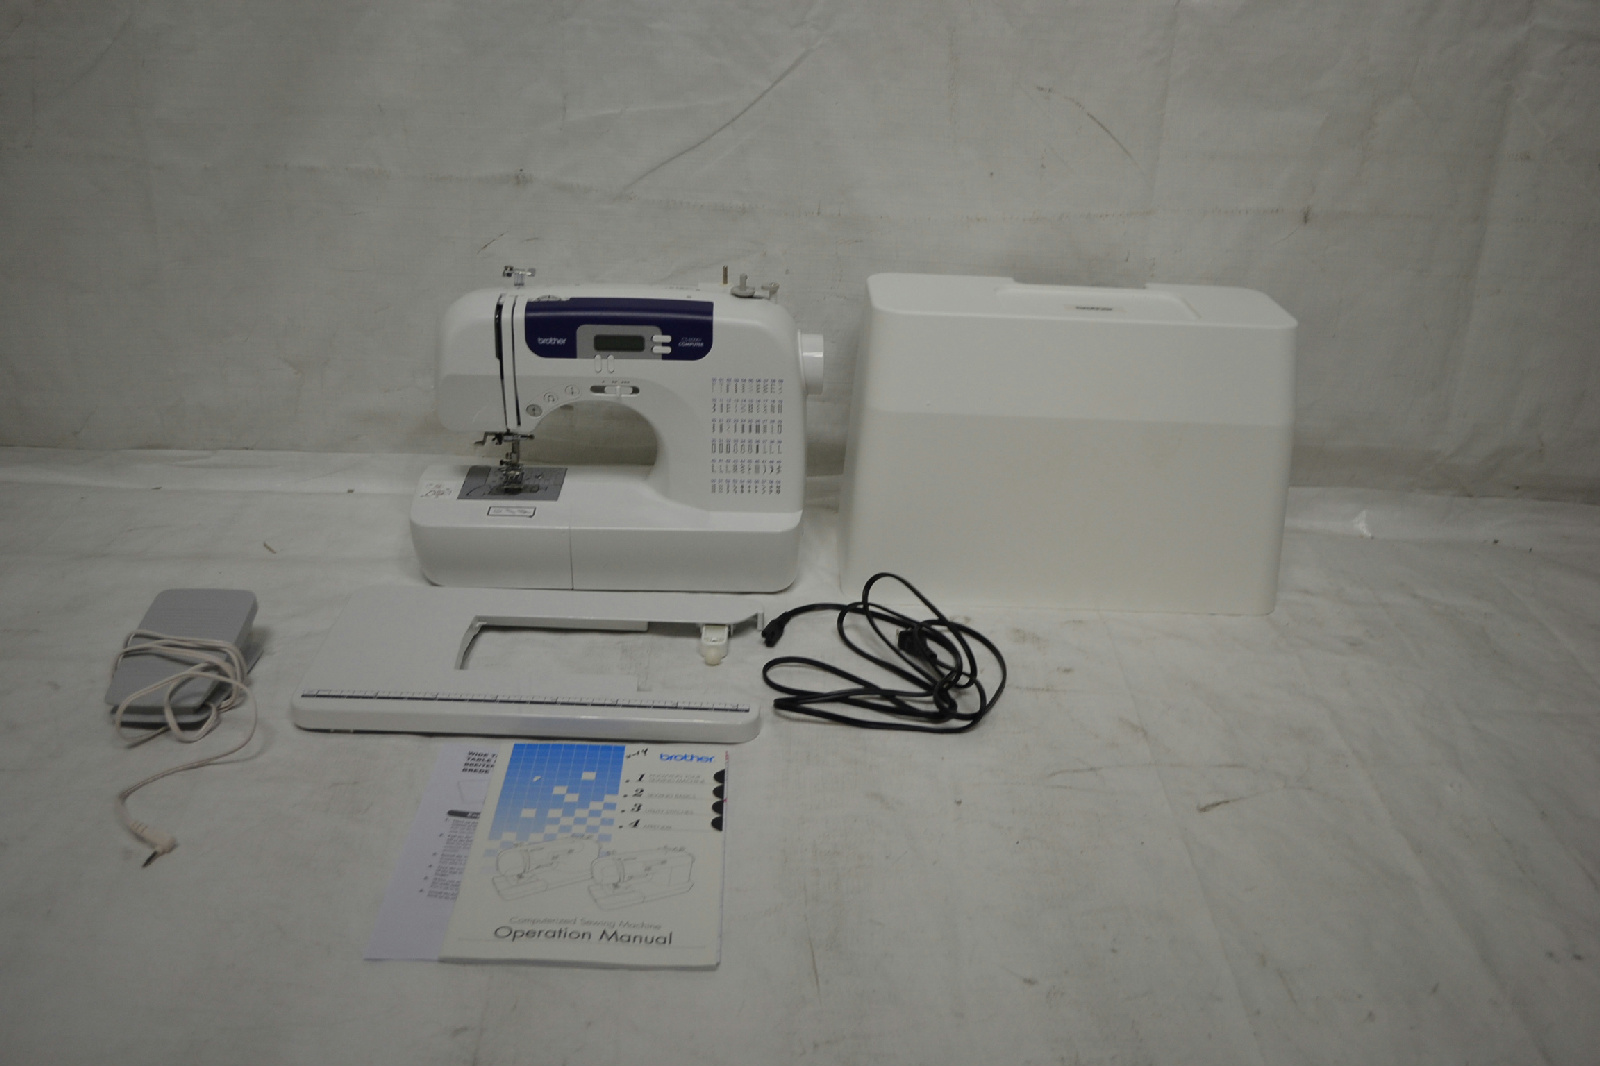 cs6000i 60 stitch computerized sewing machine with wide table